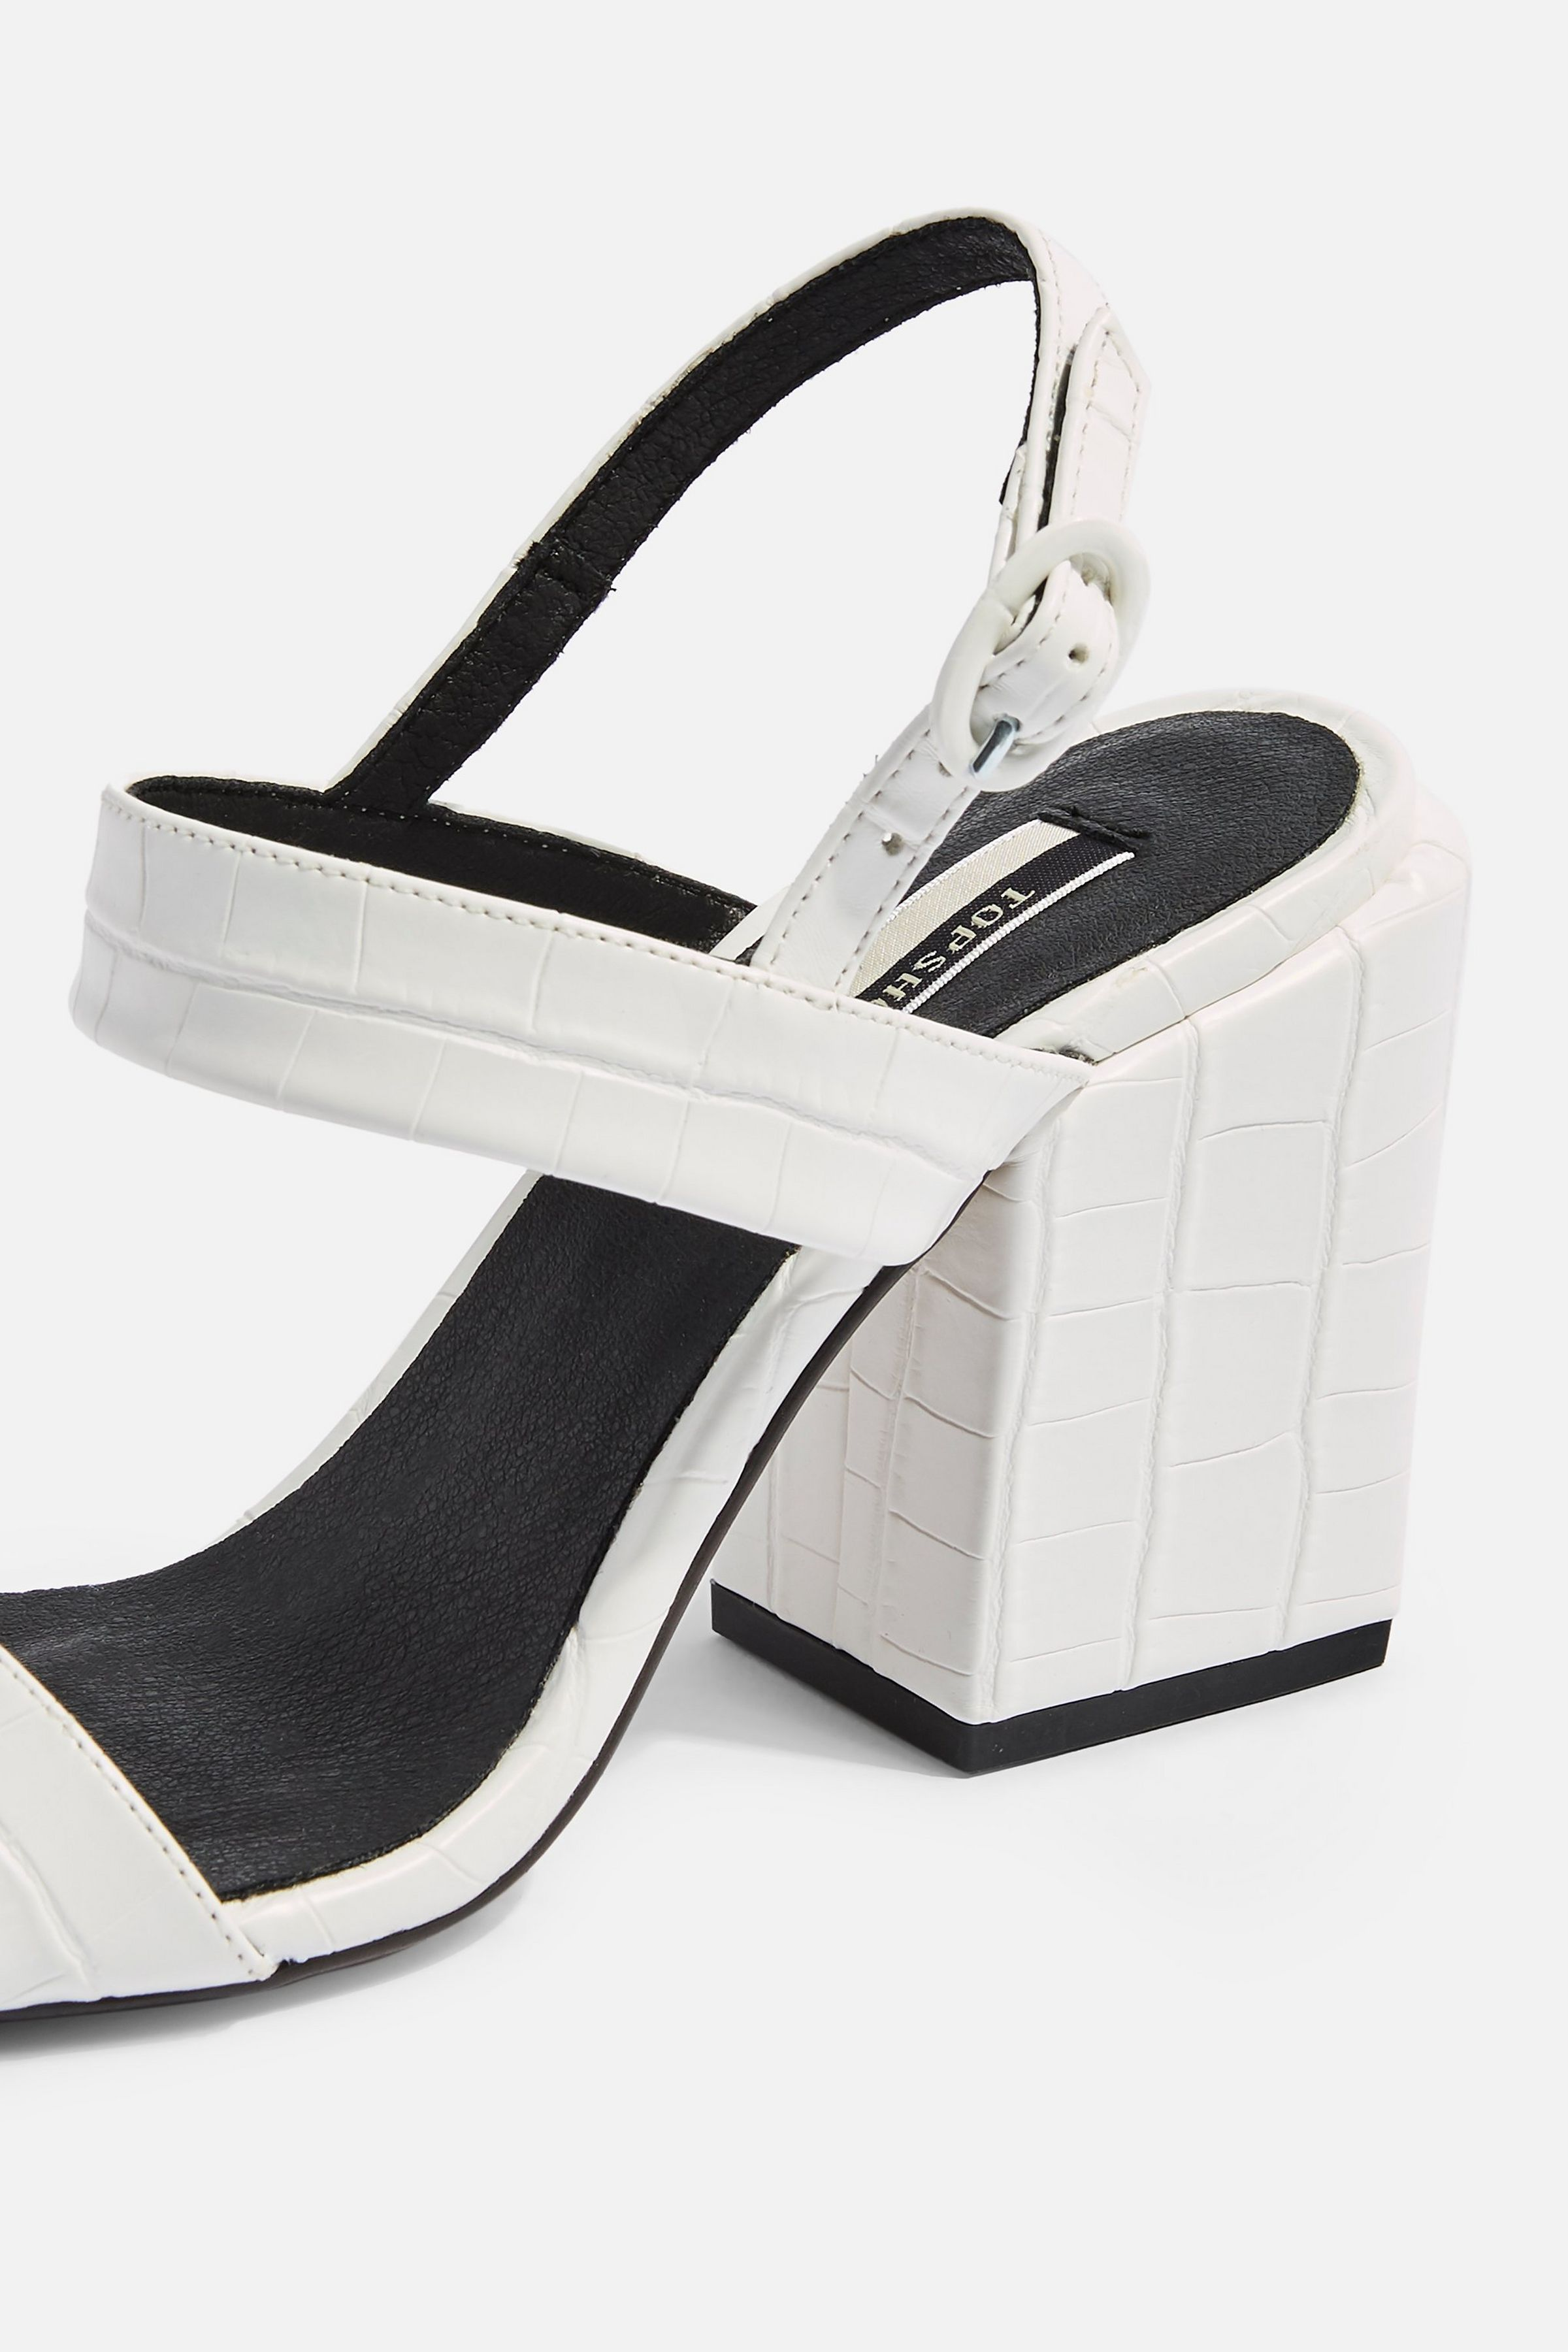 ROXIE Vegan White Block Heels £59. Source: Topshop.com